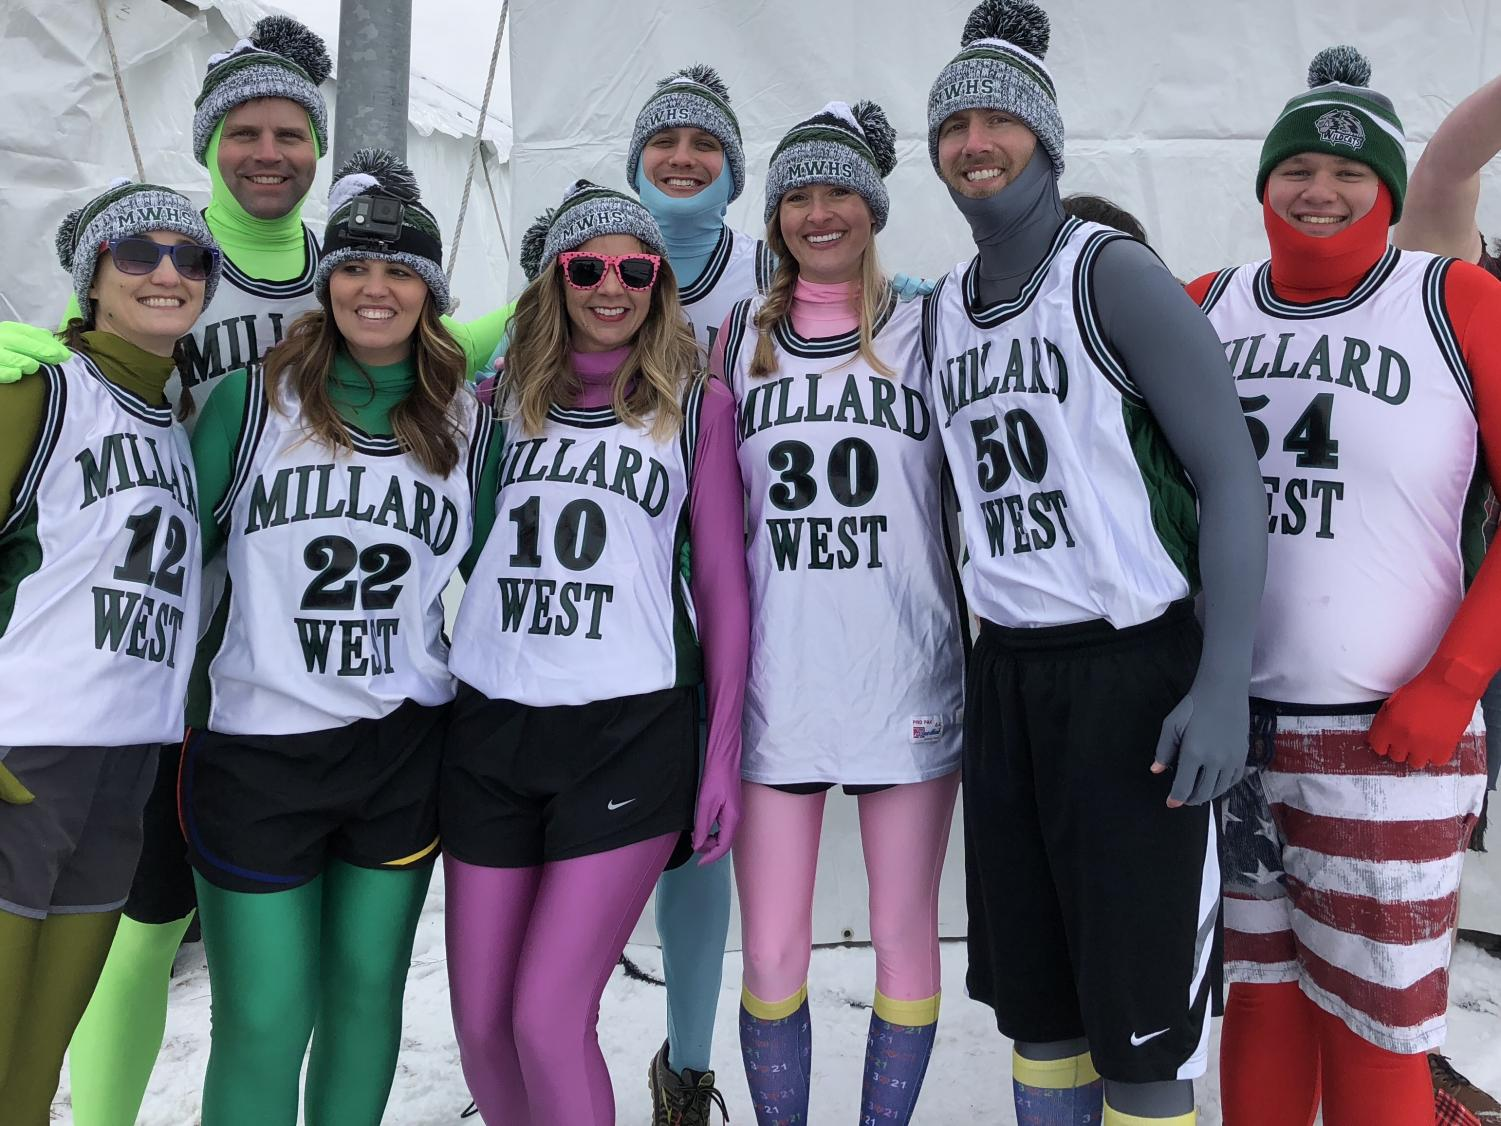 Millard West faculty team gets ready to take the plunge into Lake Cunningham